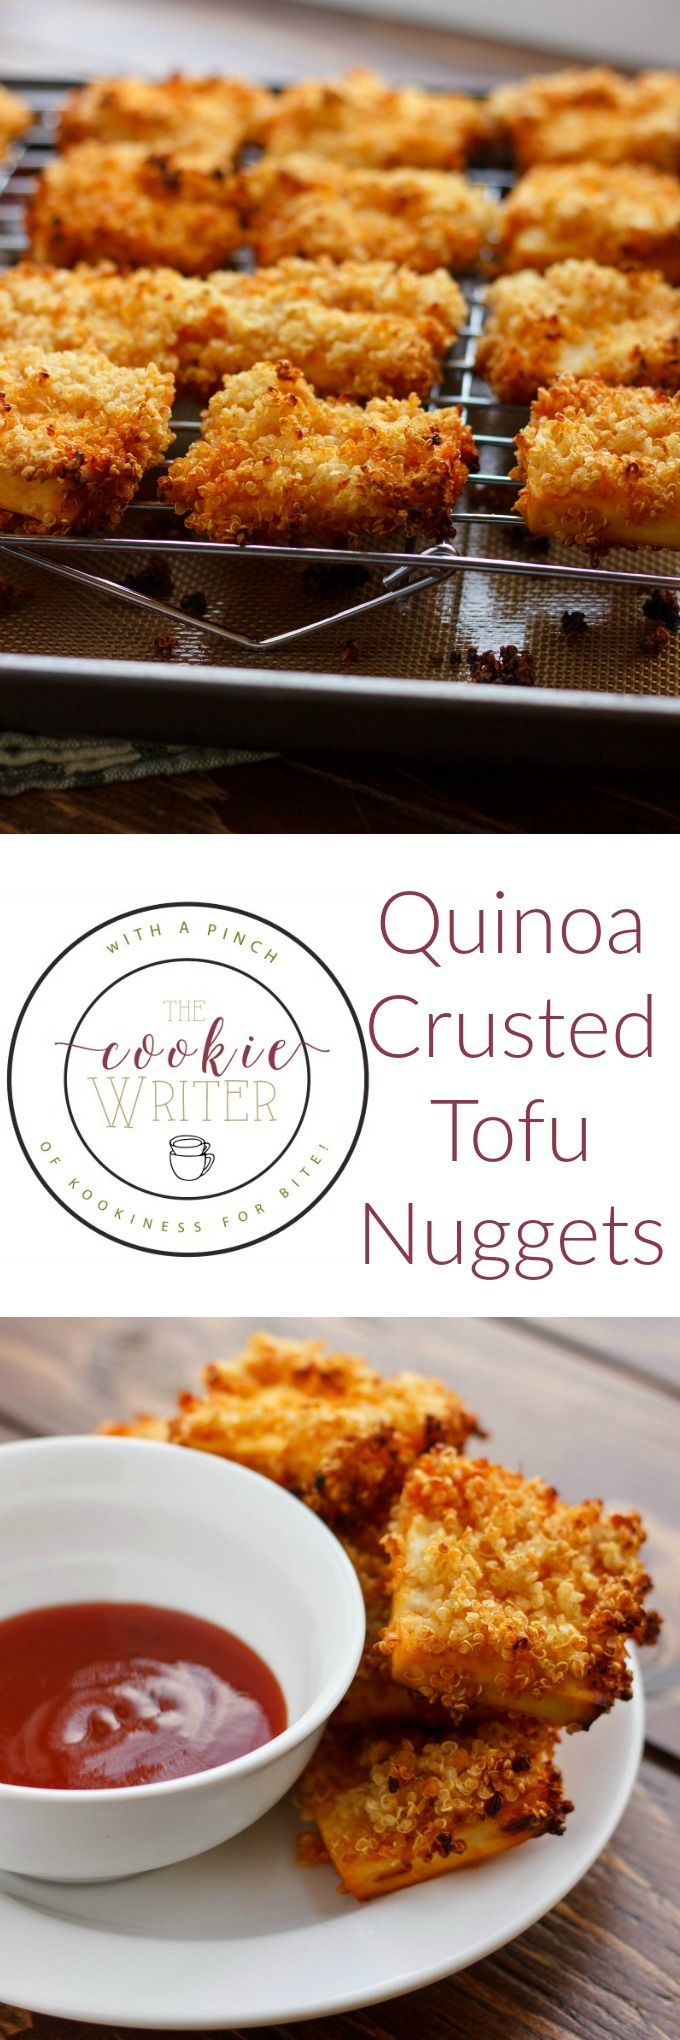 Quinoa Crusted Tofu Nuggets (Tofu Chicken Nuggets!) #tofunuggets